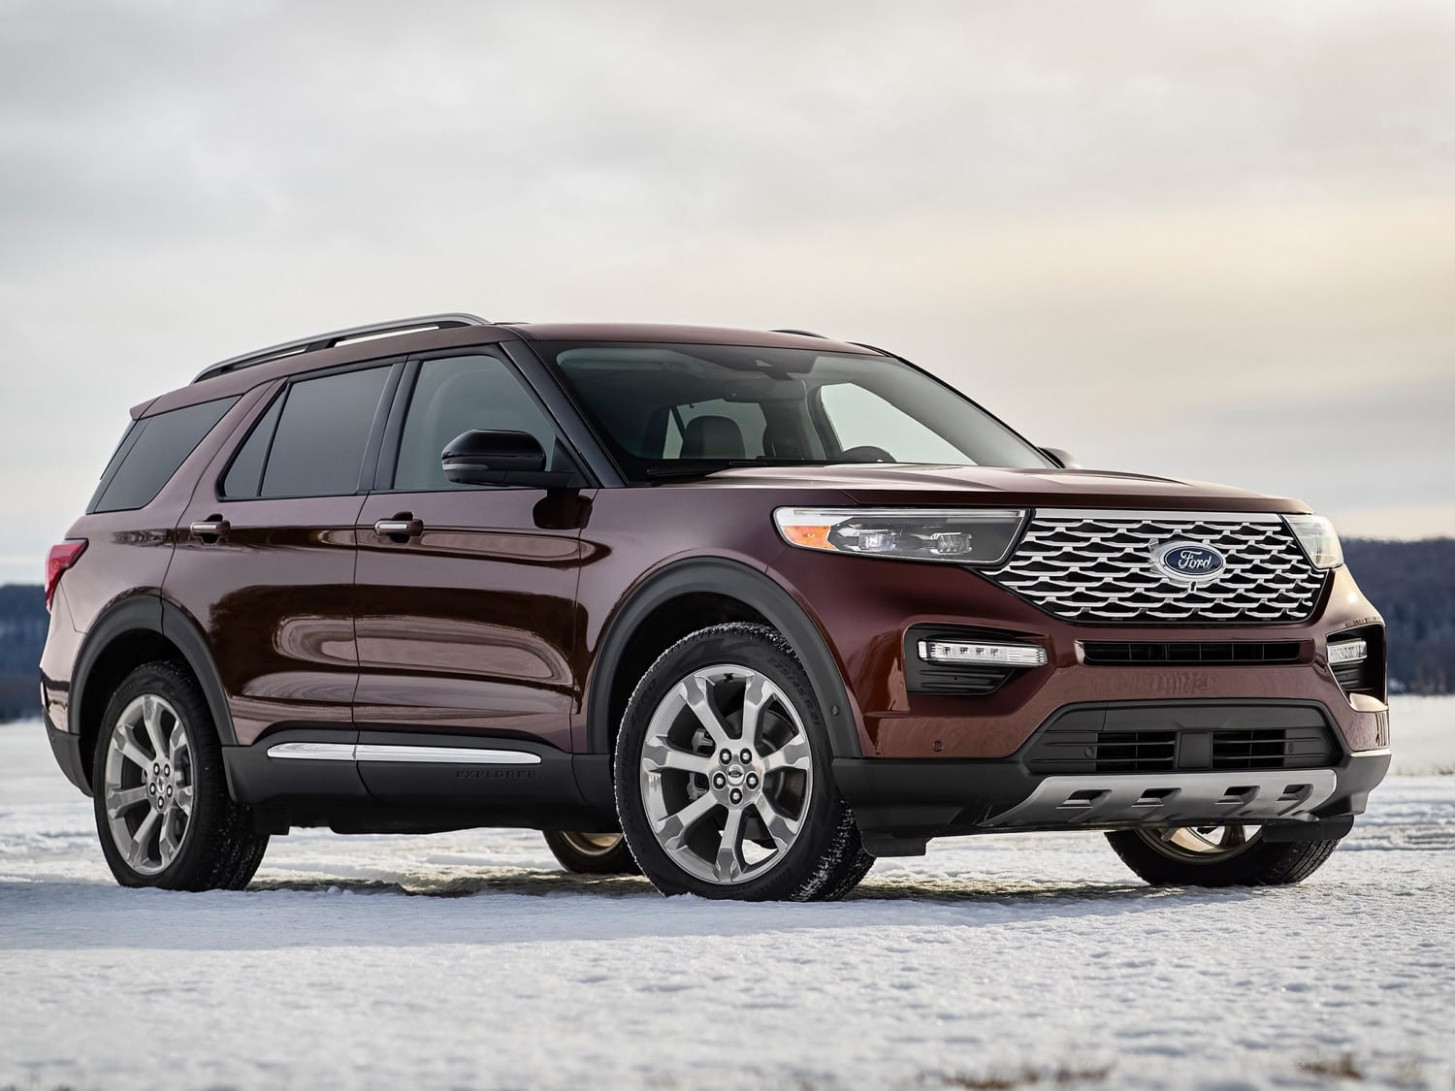 New Model and Performance 2022 Ford Explorer Interior